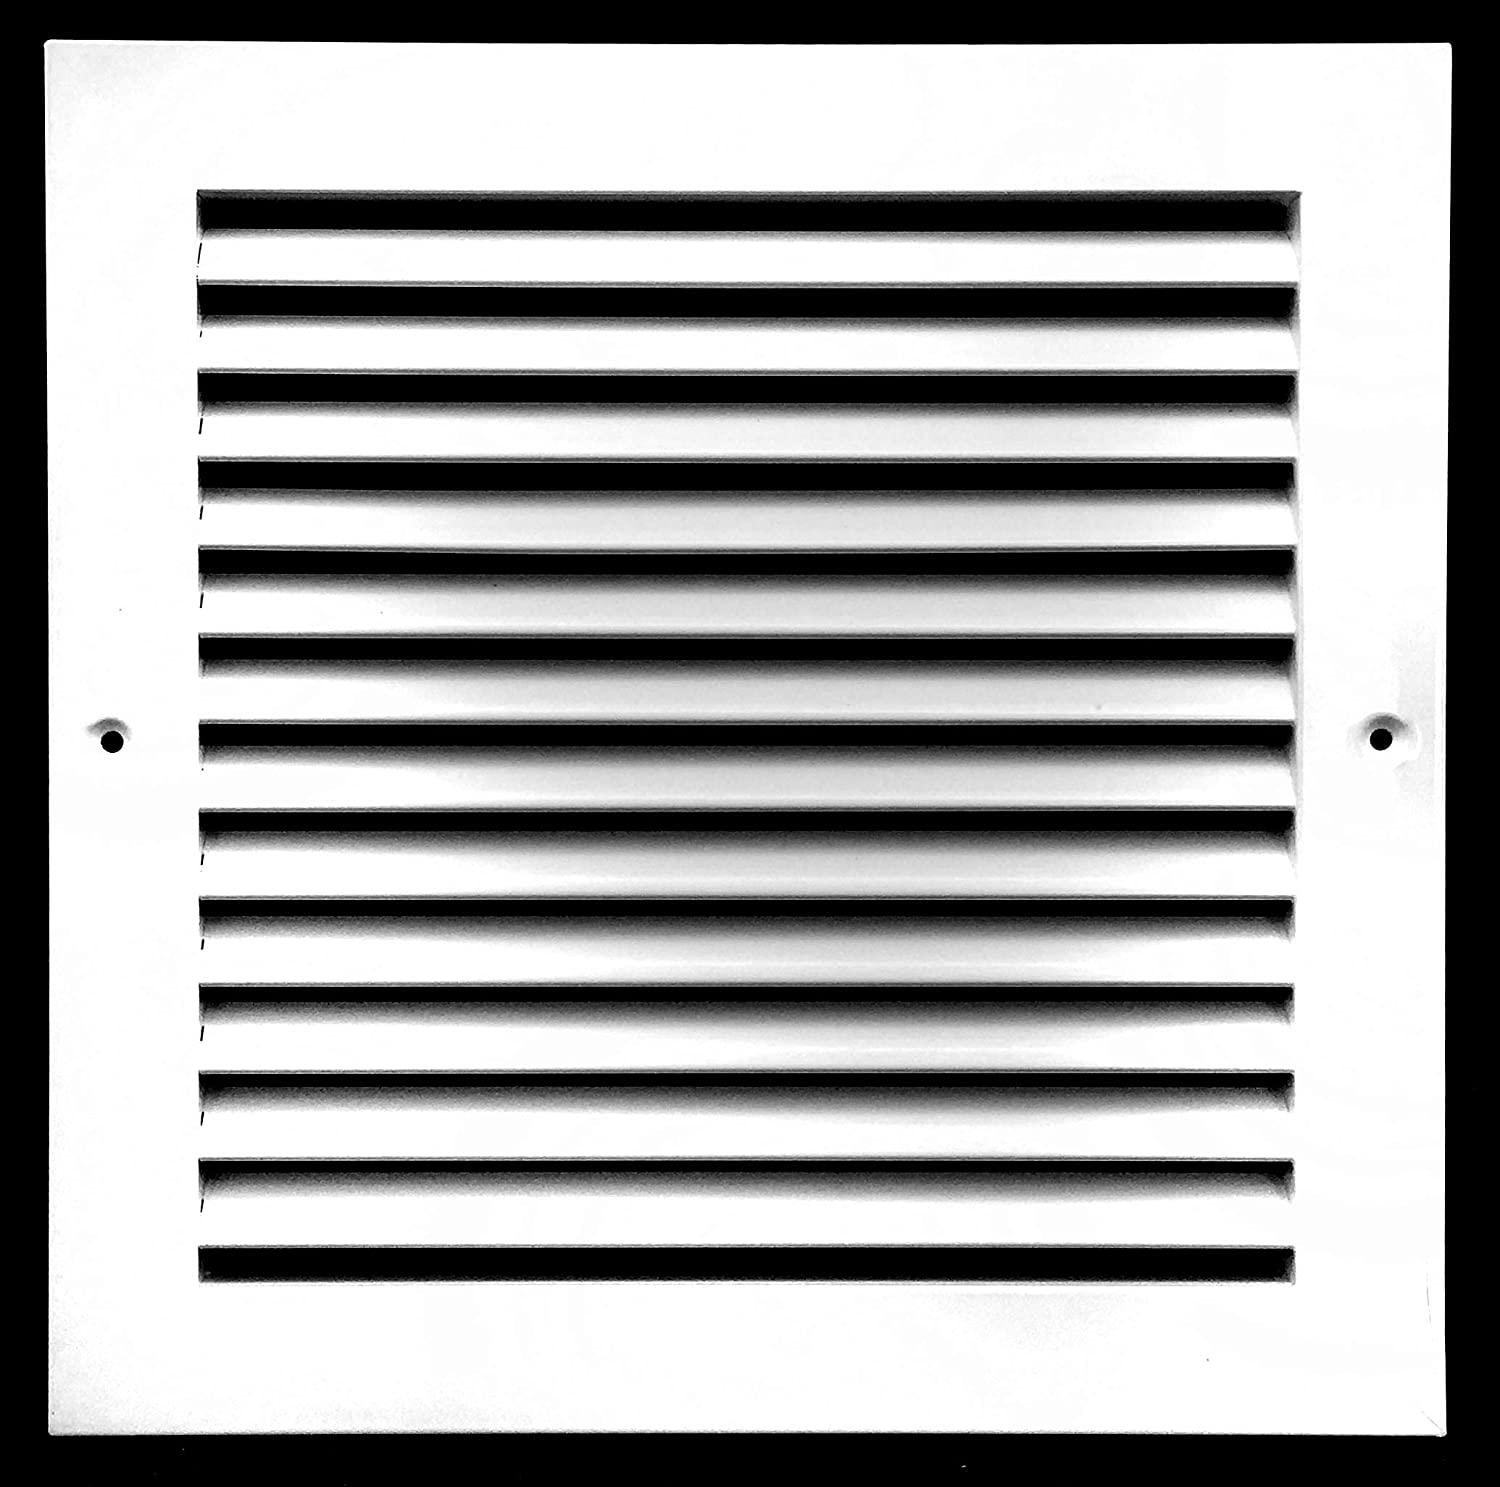 """Flat Stamped Face HVAC Dcut Cover Easy Air FLow 16w/"""" x 12h/"""" RETURN GRILLE"""